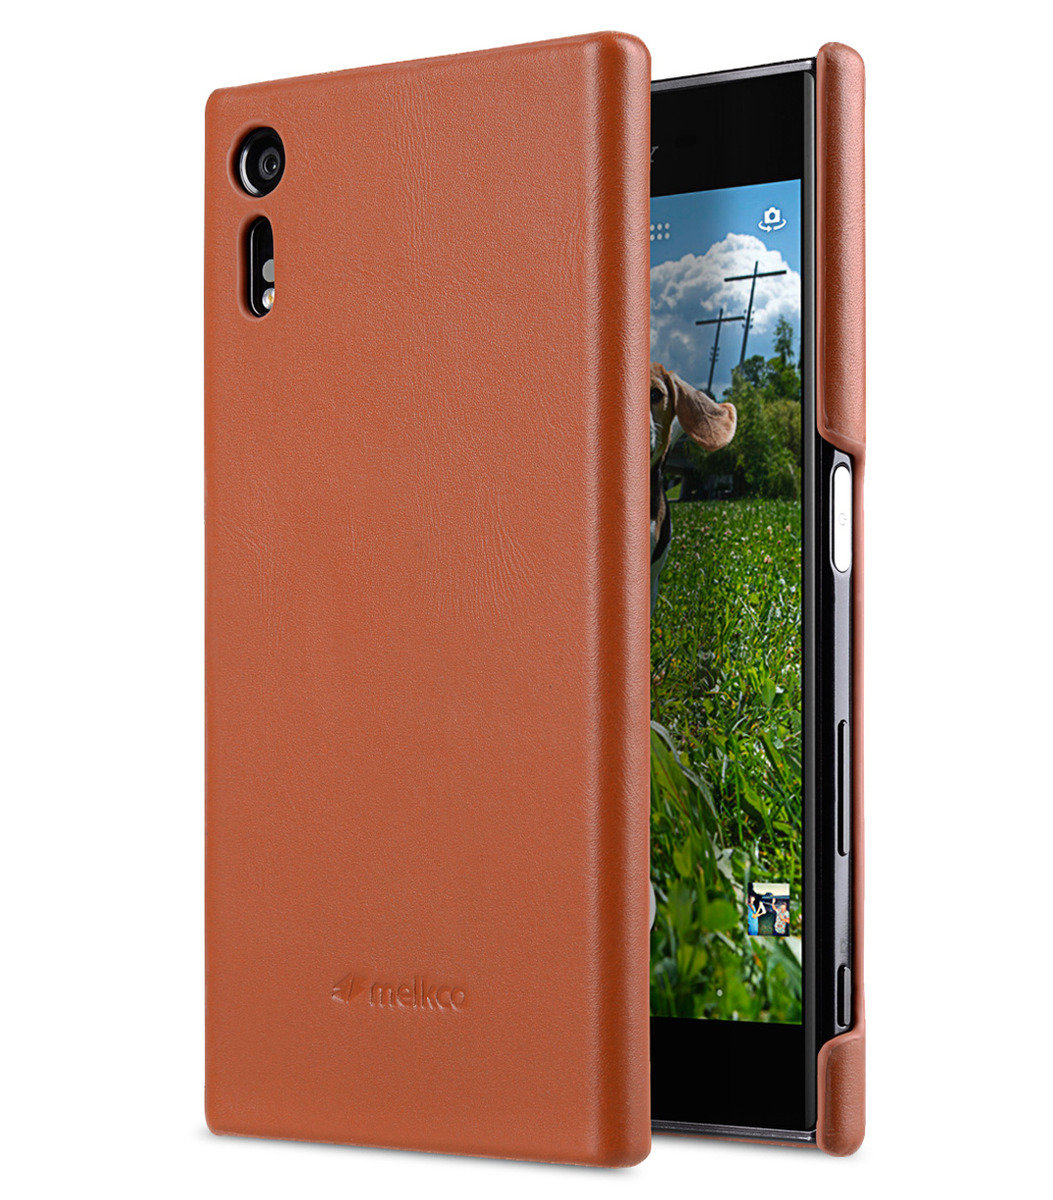 Sony Xperia XZ Premium Leather Snap Cover (Brown)